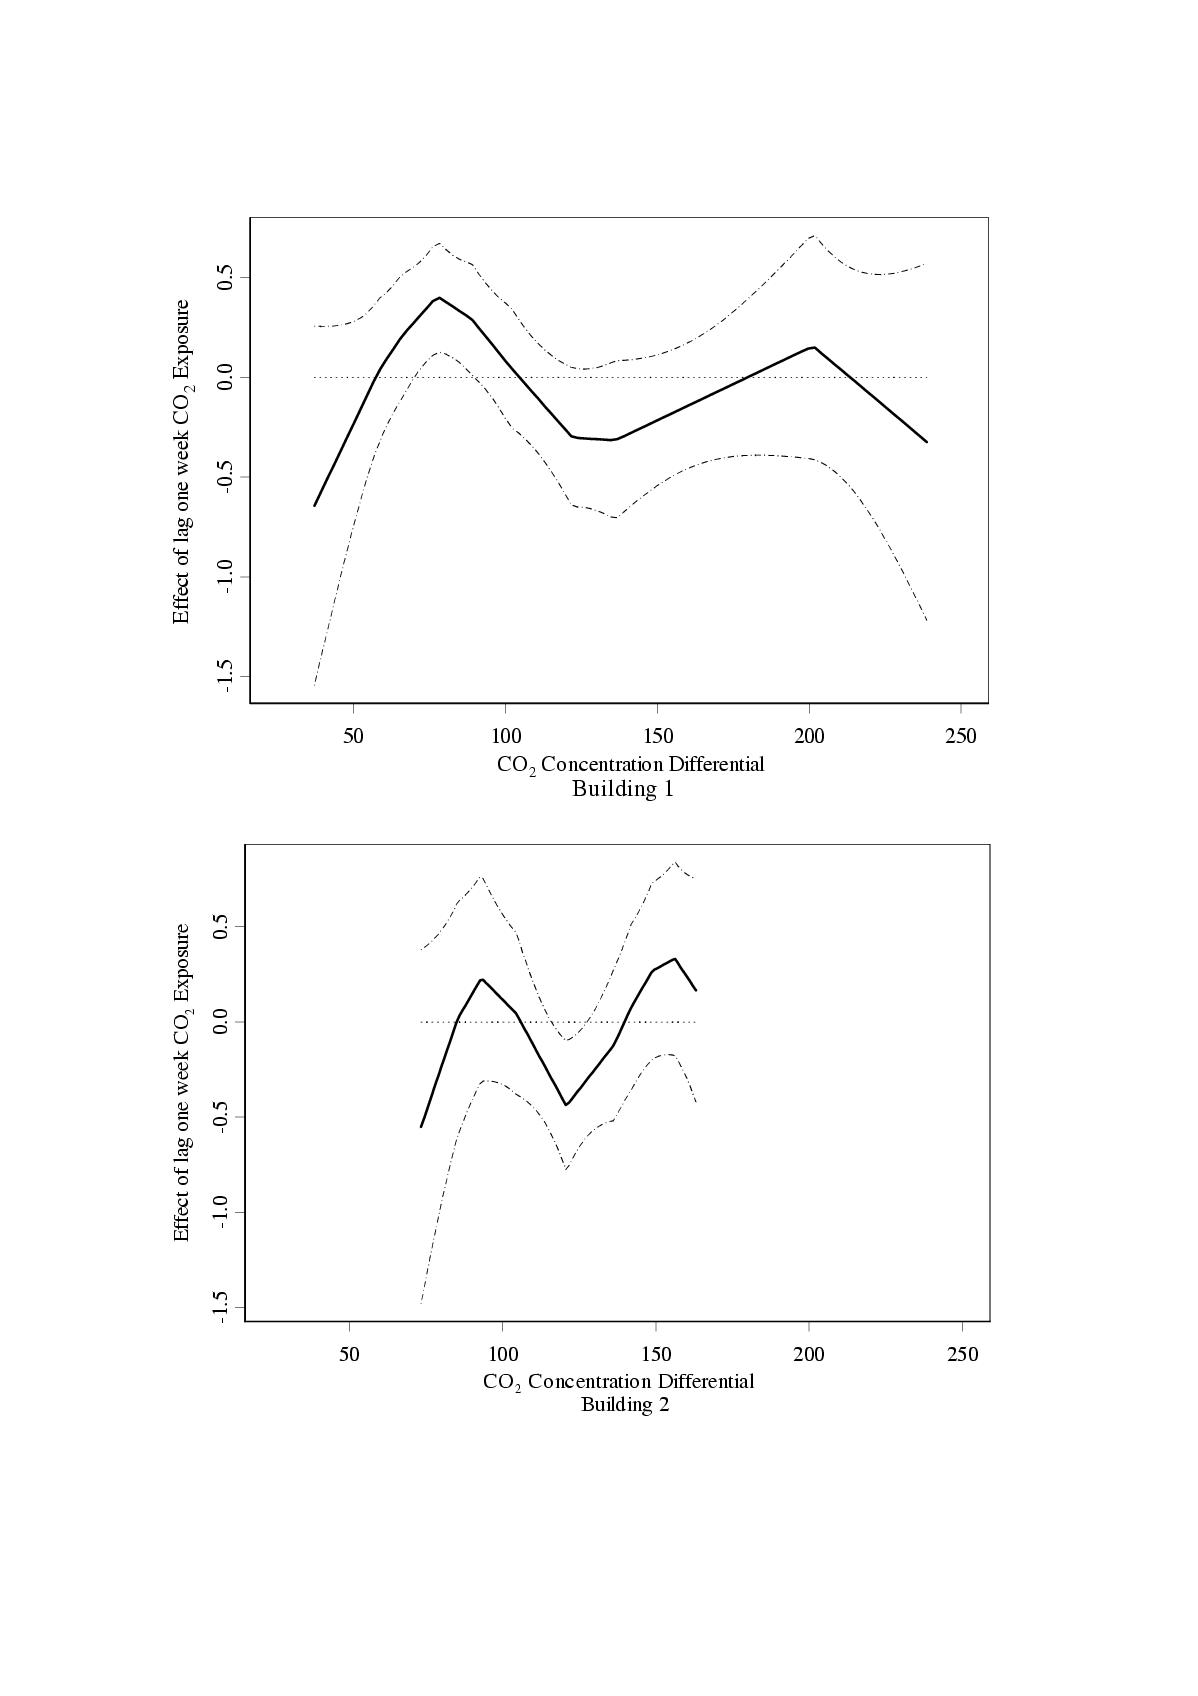 http://static-content.springer.com/image/art%3A10.1186%2F1476-069X-1-3/MediaObjects/12940_2002_Article_3_Fig2_HTML.jpg